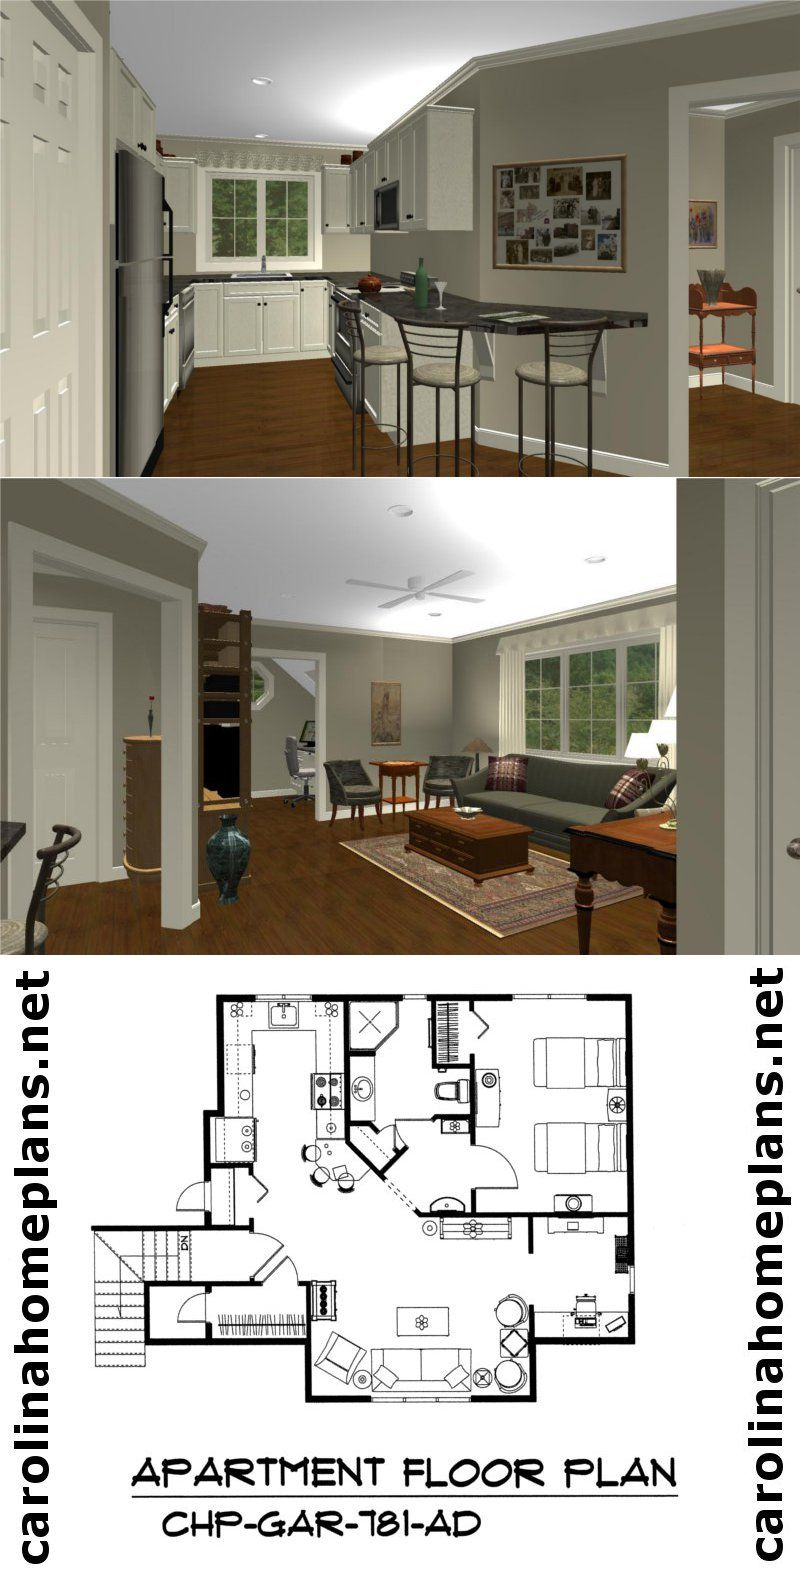 Small Expandable House Plans House Plans For Small Budgets House Plans Small House Plans Garage Apartment Plans